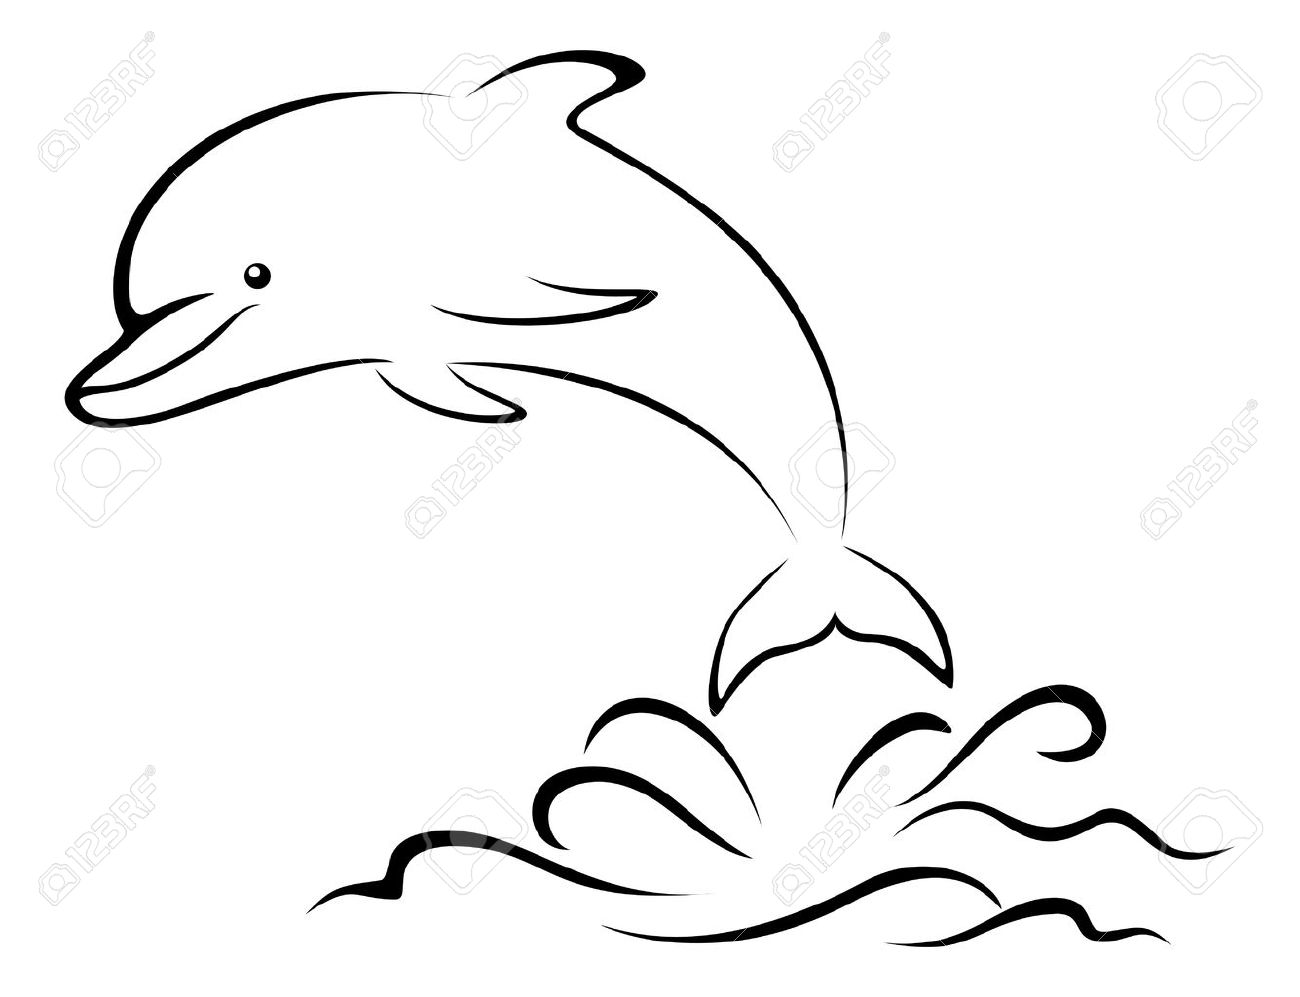 Cartoon Dolphin Jumping Over the Sea Waves, Black Contours Pictogram...